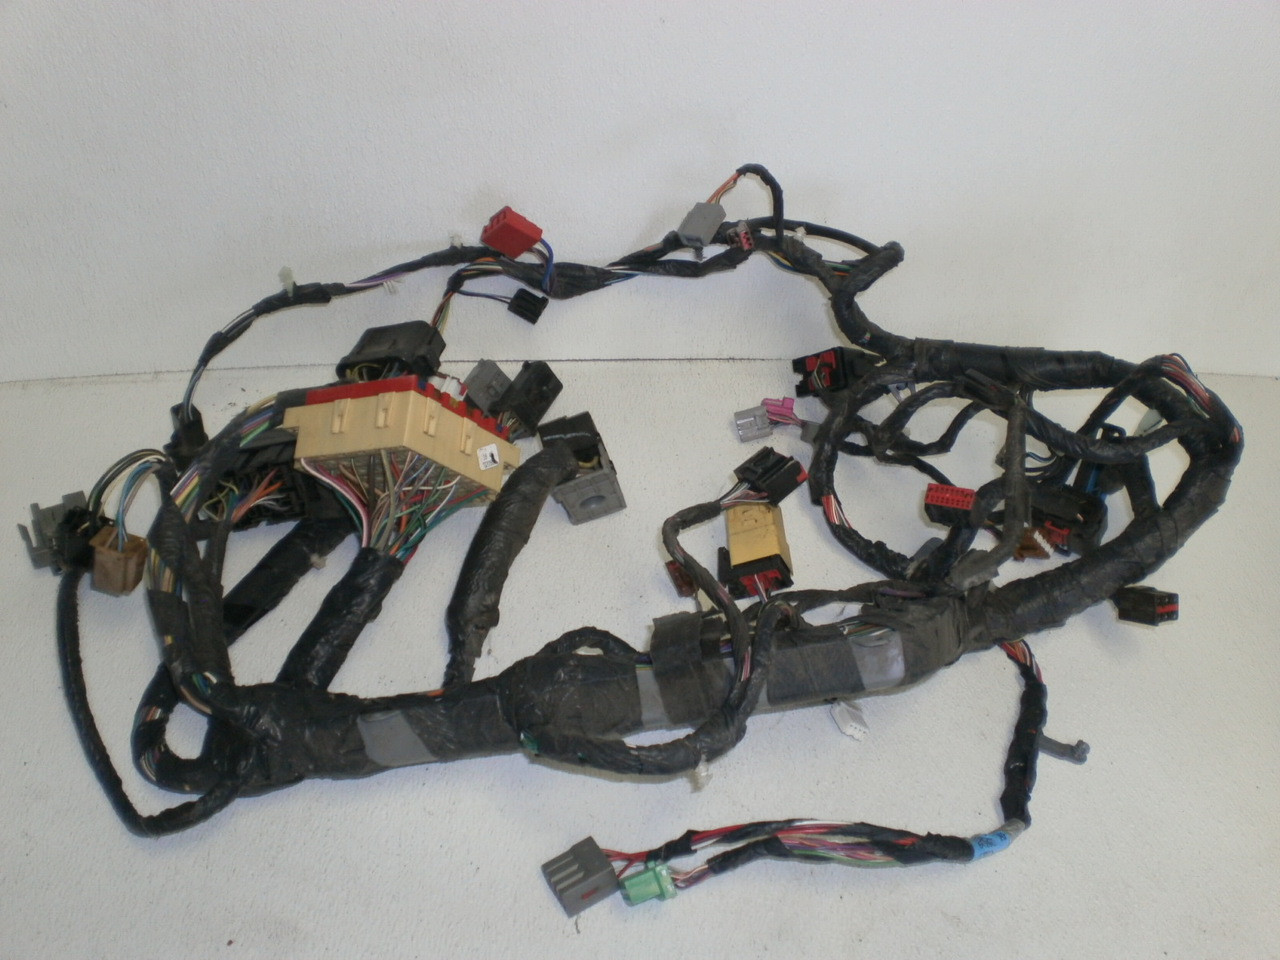 2004 Ford Mustang Wiring Harness 1996 1998 46 Power Steering Pump Pulley P S Gt Cobra 2001 Interior Dash Wire 1r33 14401 Af